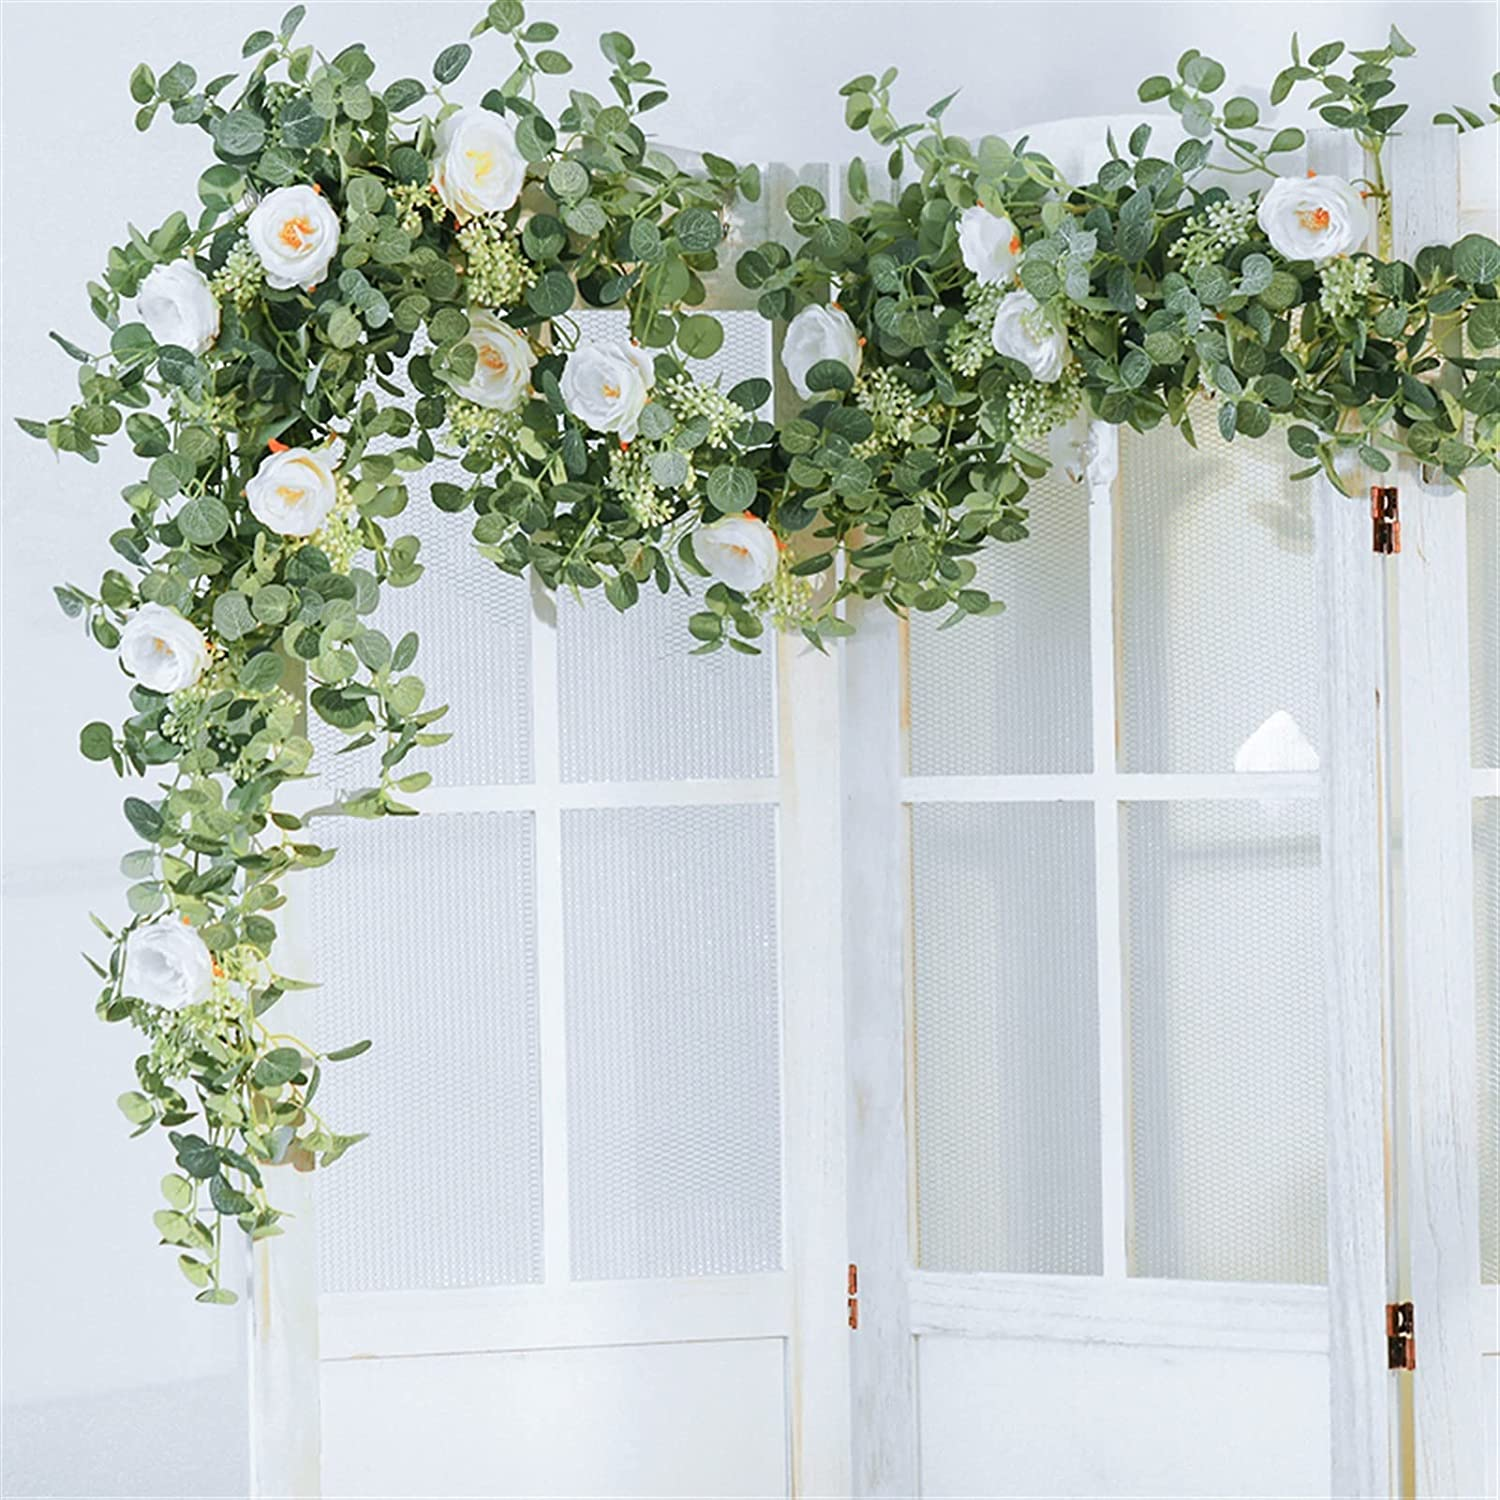 Artificial flowers flower wreath Max 83% sold out OFF 2m fake eucalyptus